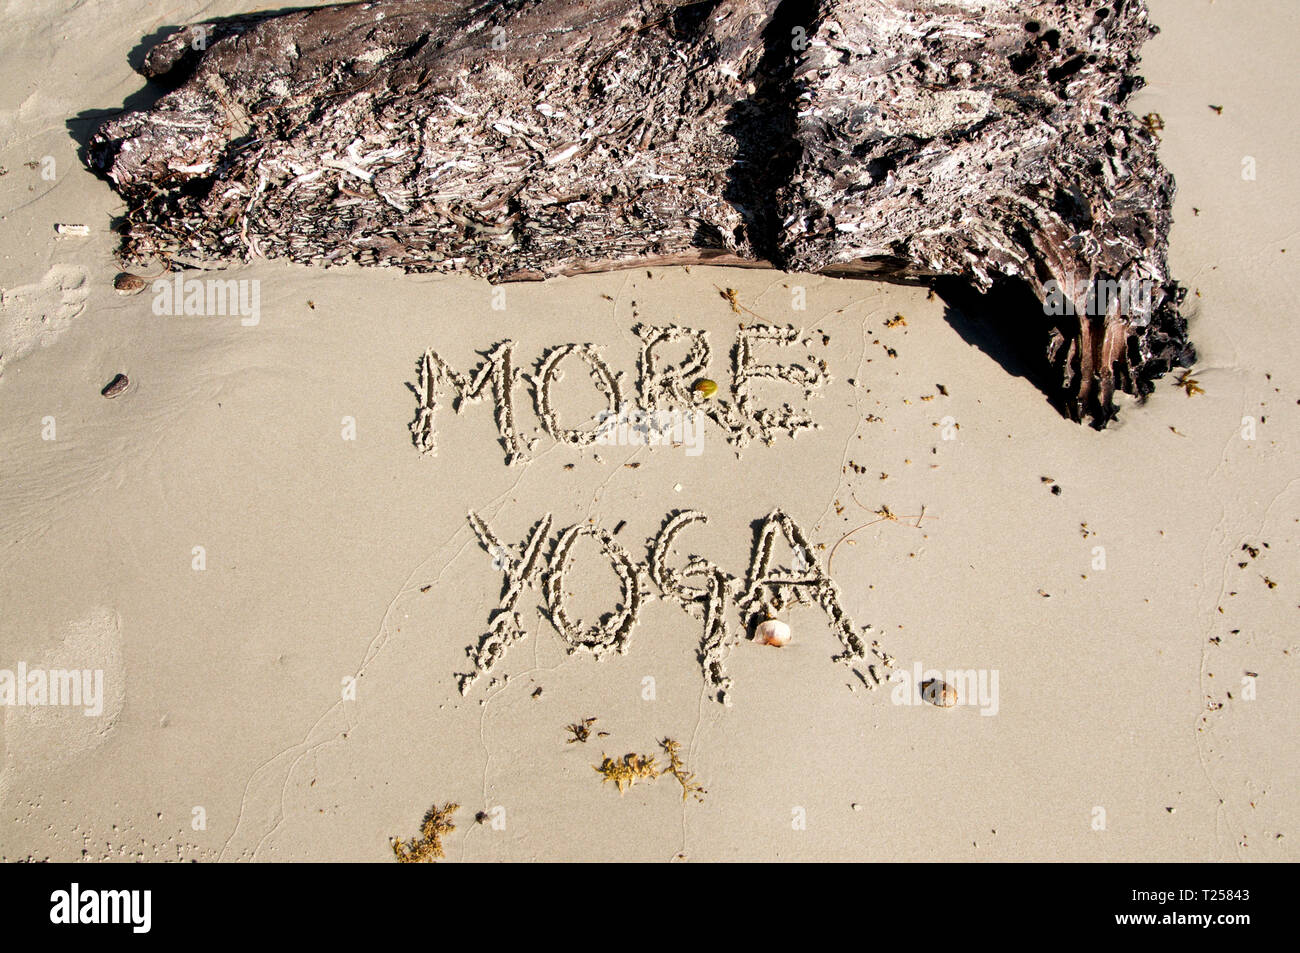 Text 'More Yoga' written in the sand, with a tree trunk above made on Otres Beach, Cambodia - Stock Image